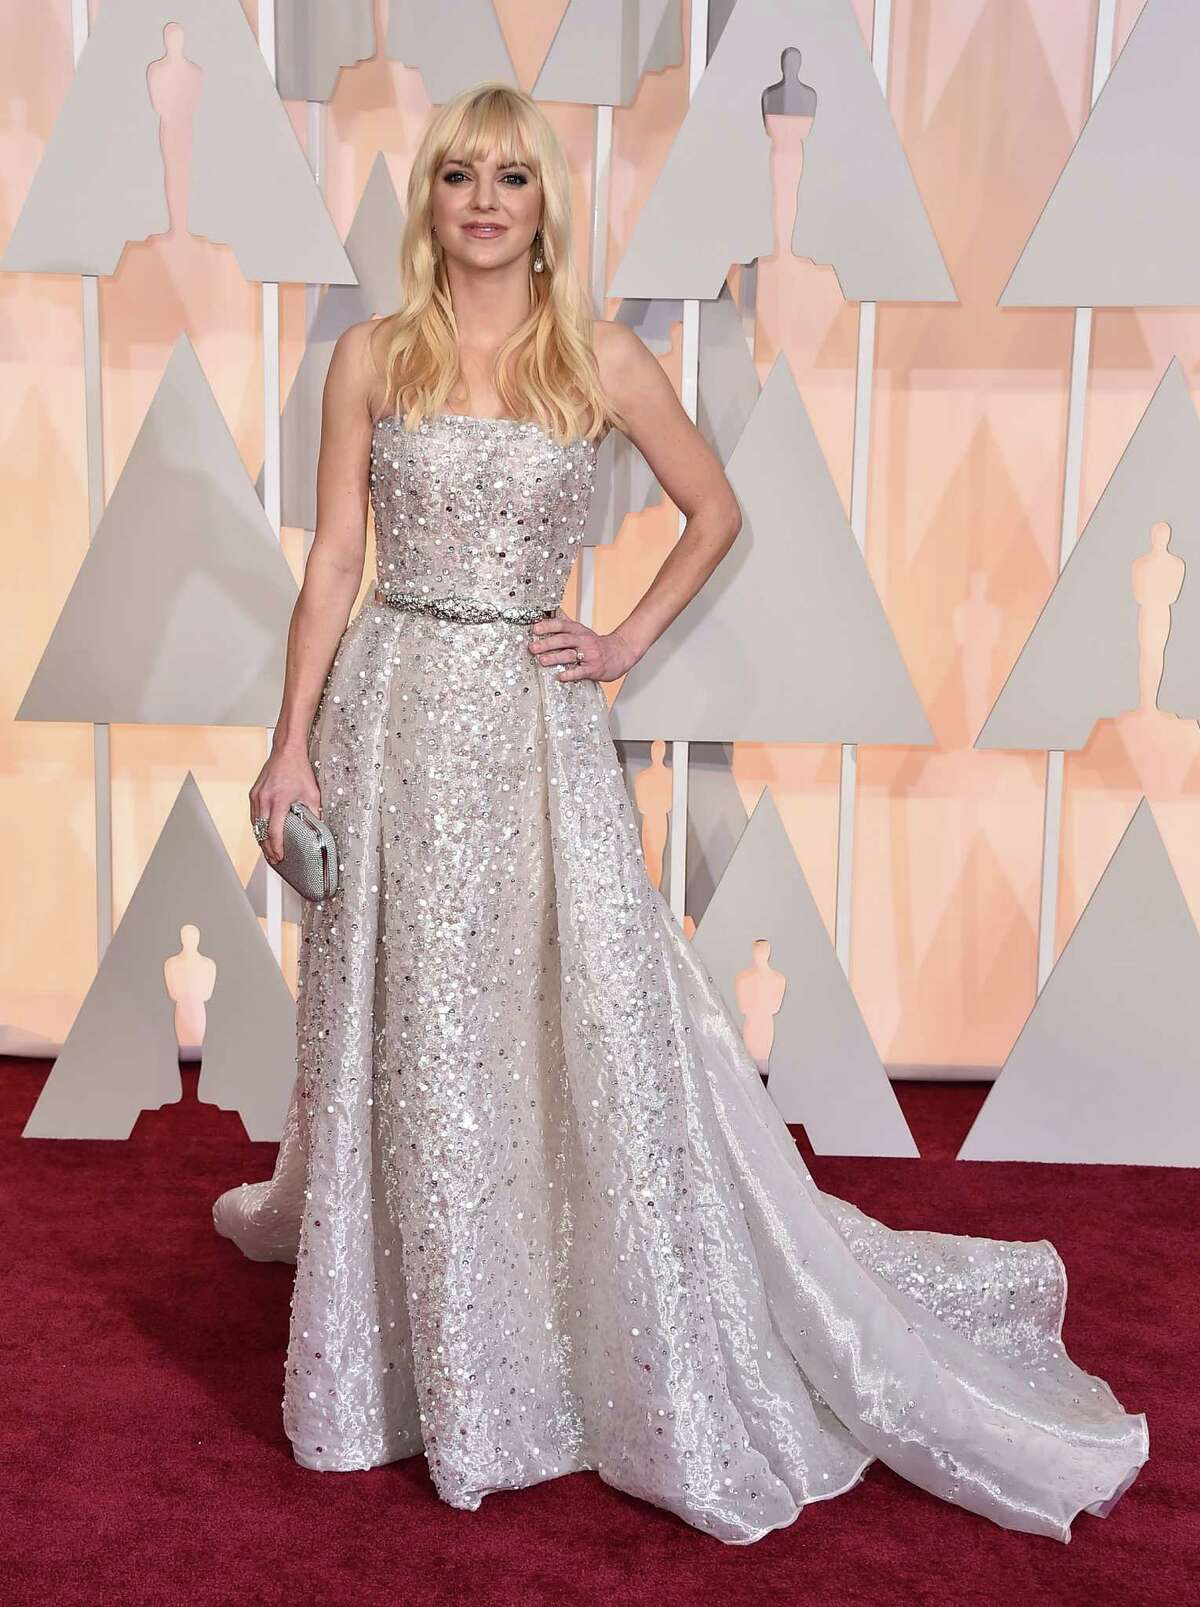 Anna Faris arrives at the Oscars on Sunday, Feb. 22, 2015, at the Dolby Theatre in Los Angeles. (Photo by Jordan Strauss/Invision/AP)